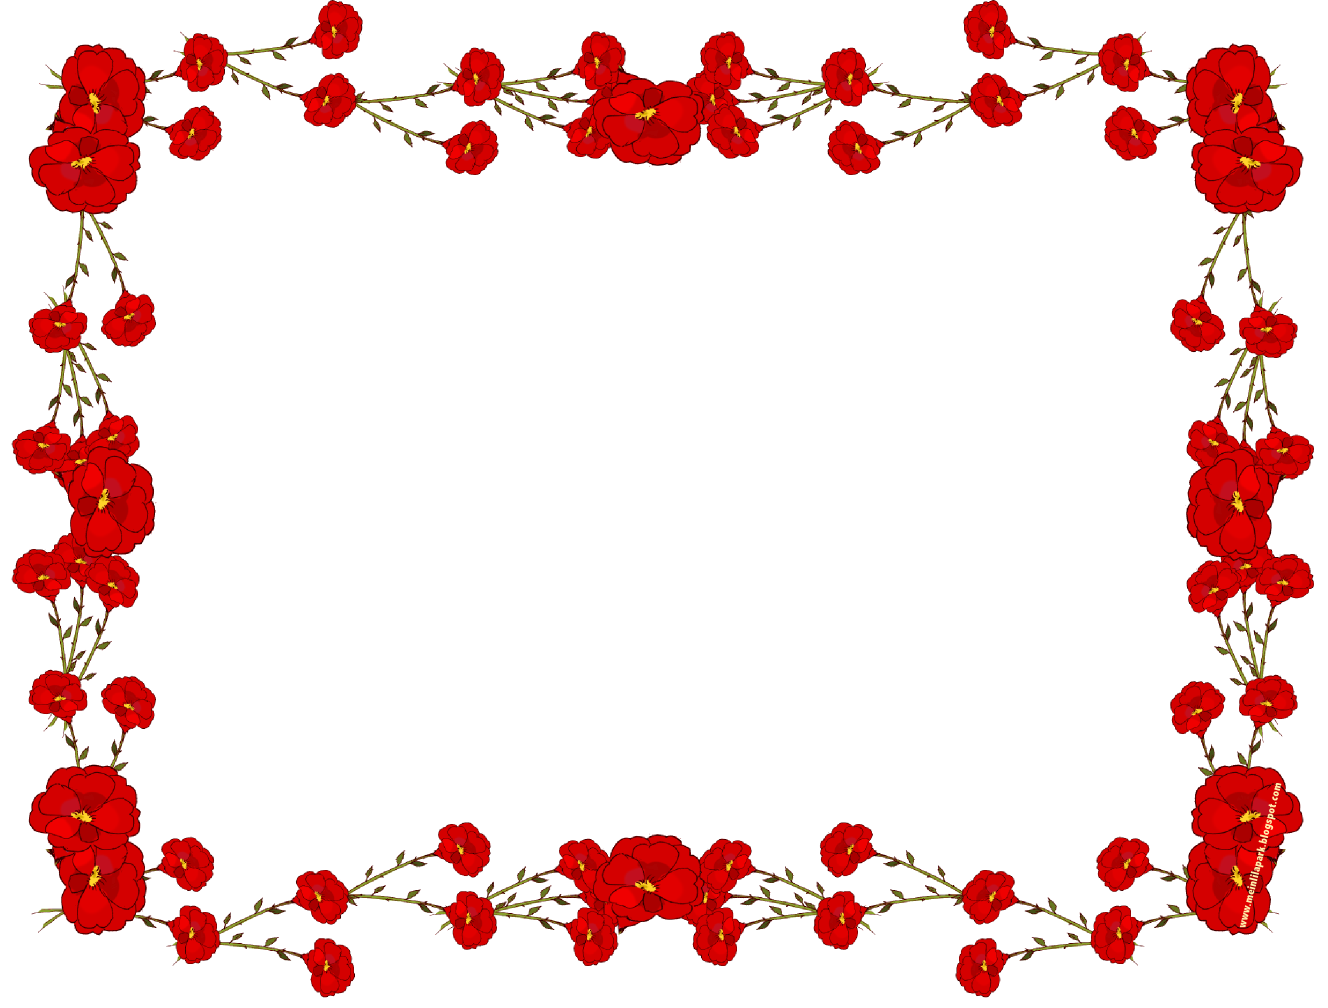 Flower Png Frame - ClipArt Best